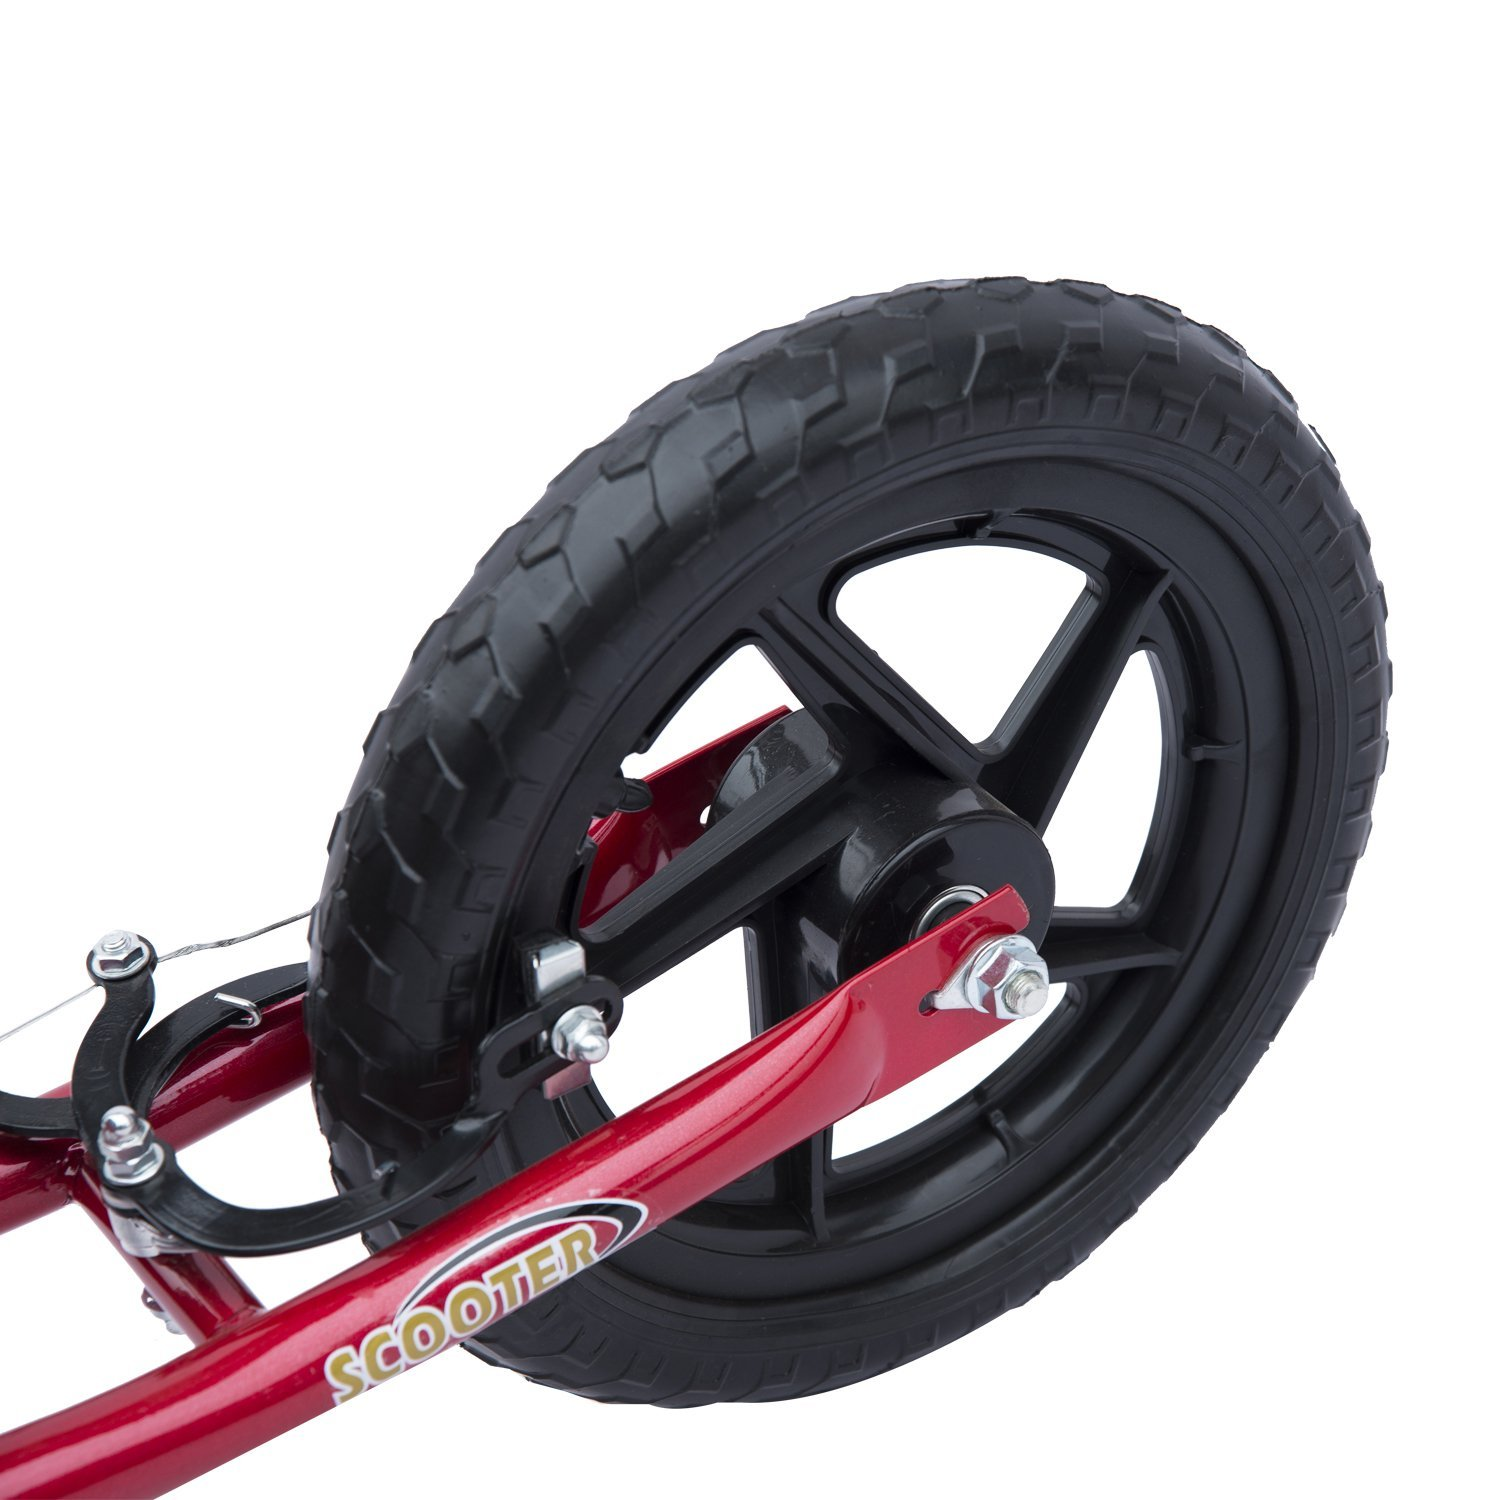 Teen-Push-Scooter-Kids-Children-Stunt-Scooter-Bike-Bicycle-Ride-On-12-034-Tyres-New thumbnail 30